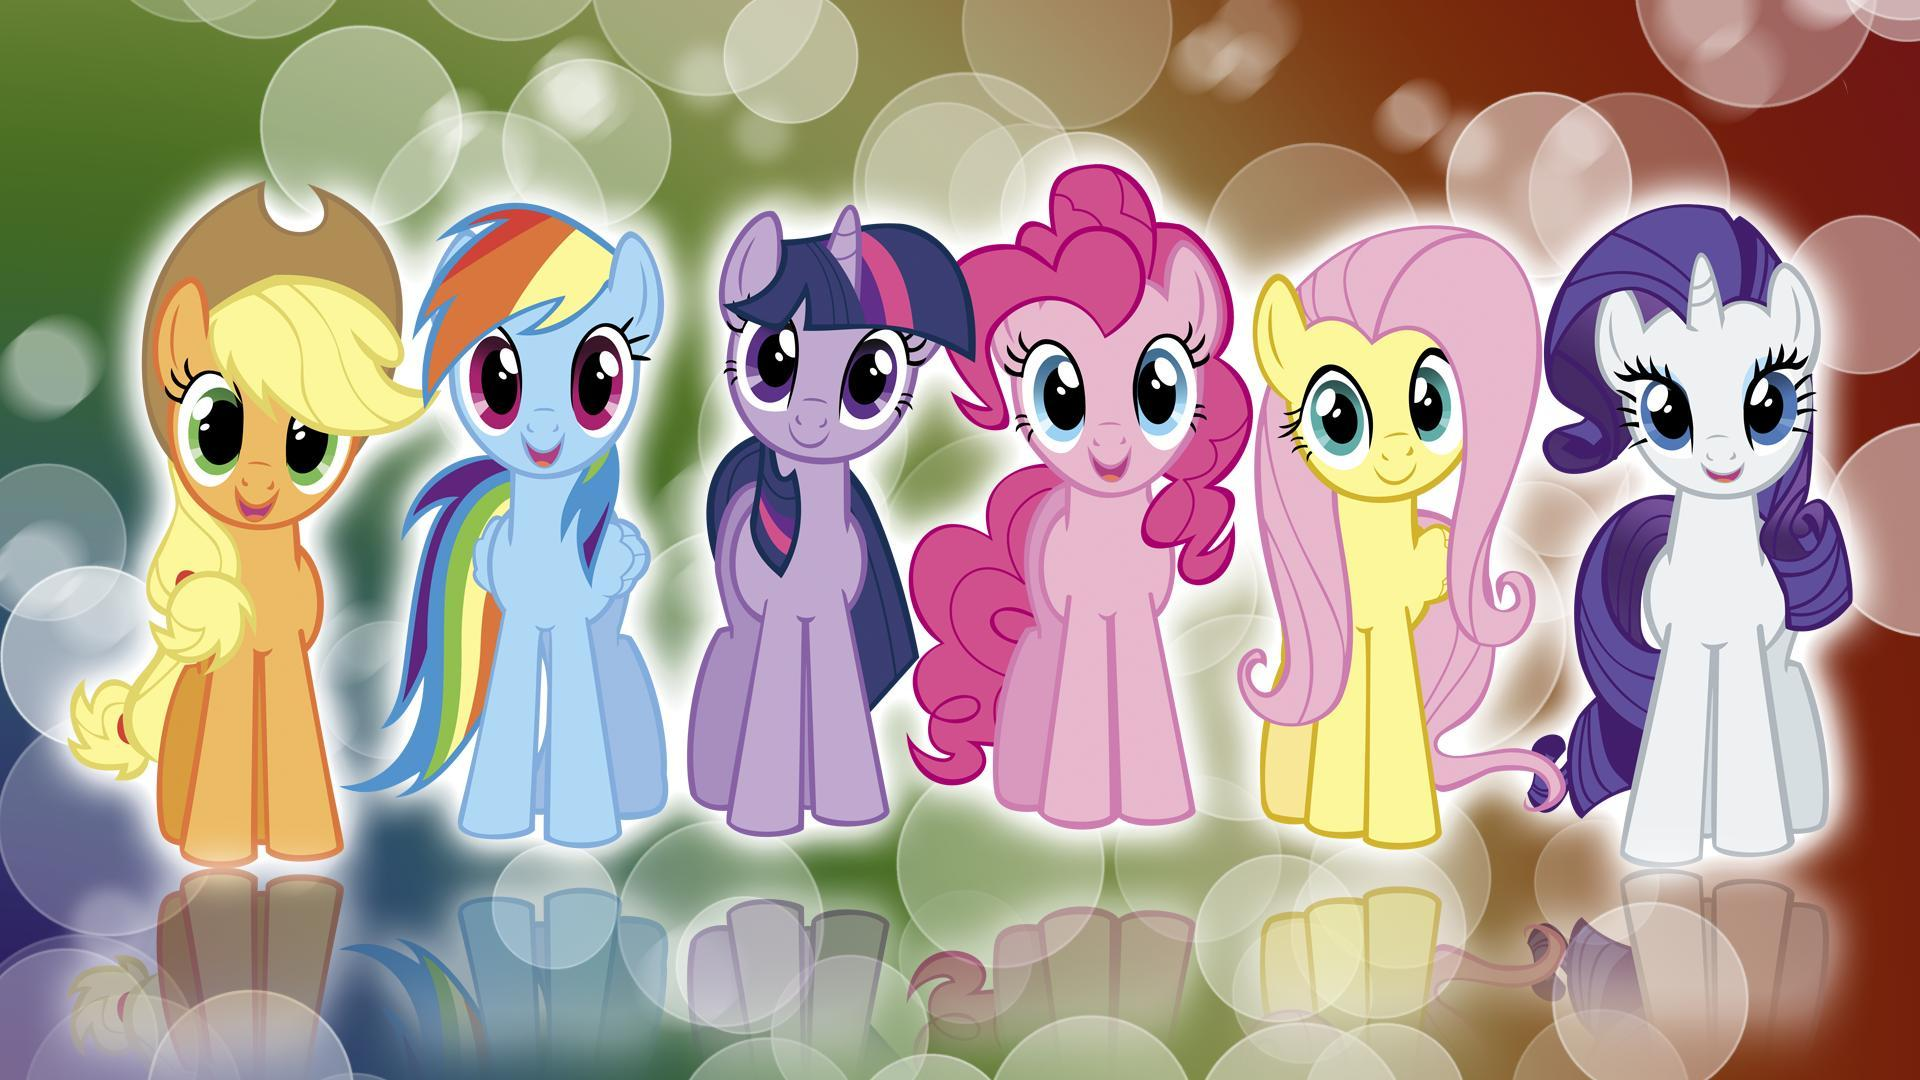 Free My Little Pony HD Wallpaper #699 | Foolhardi.